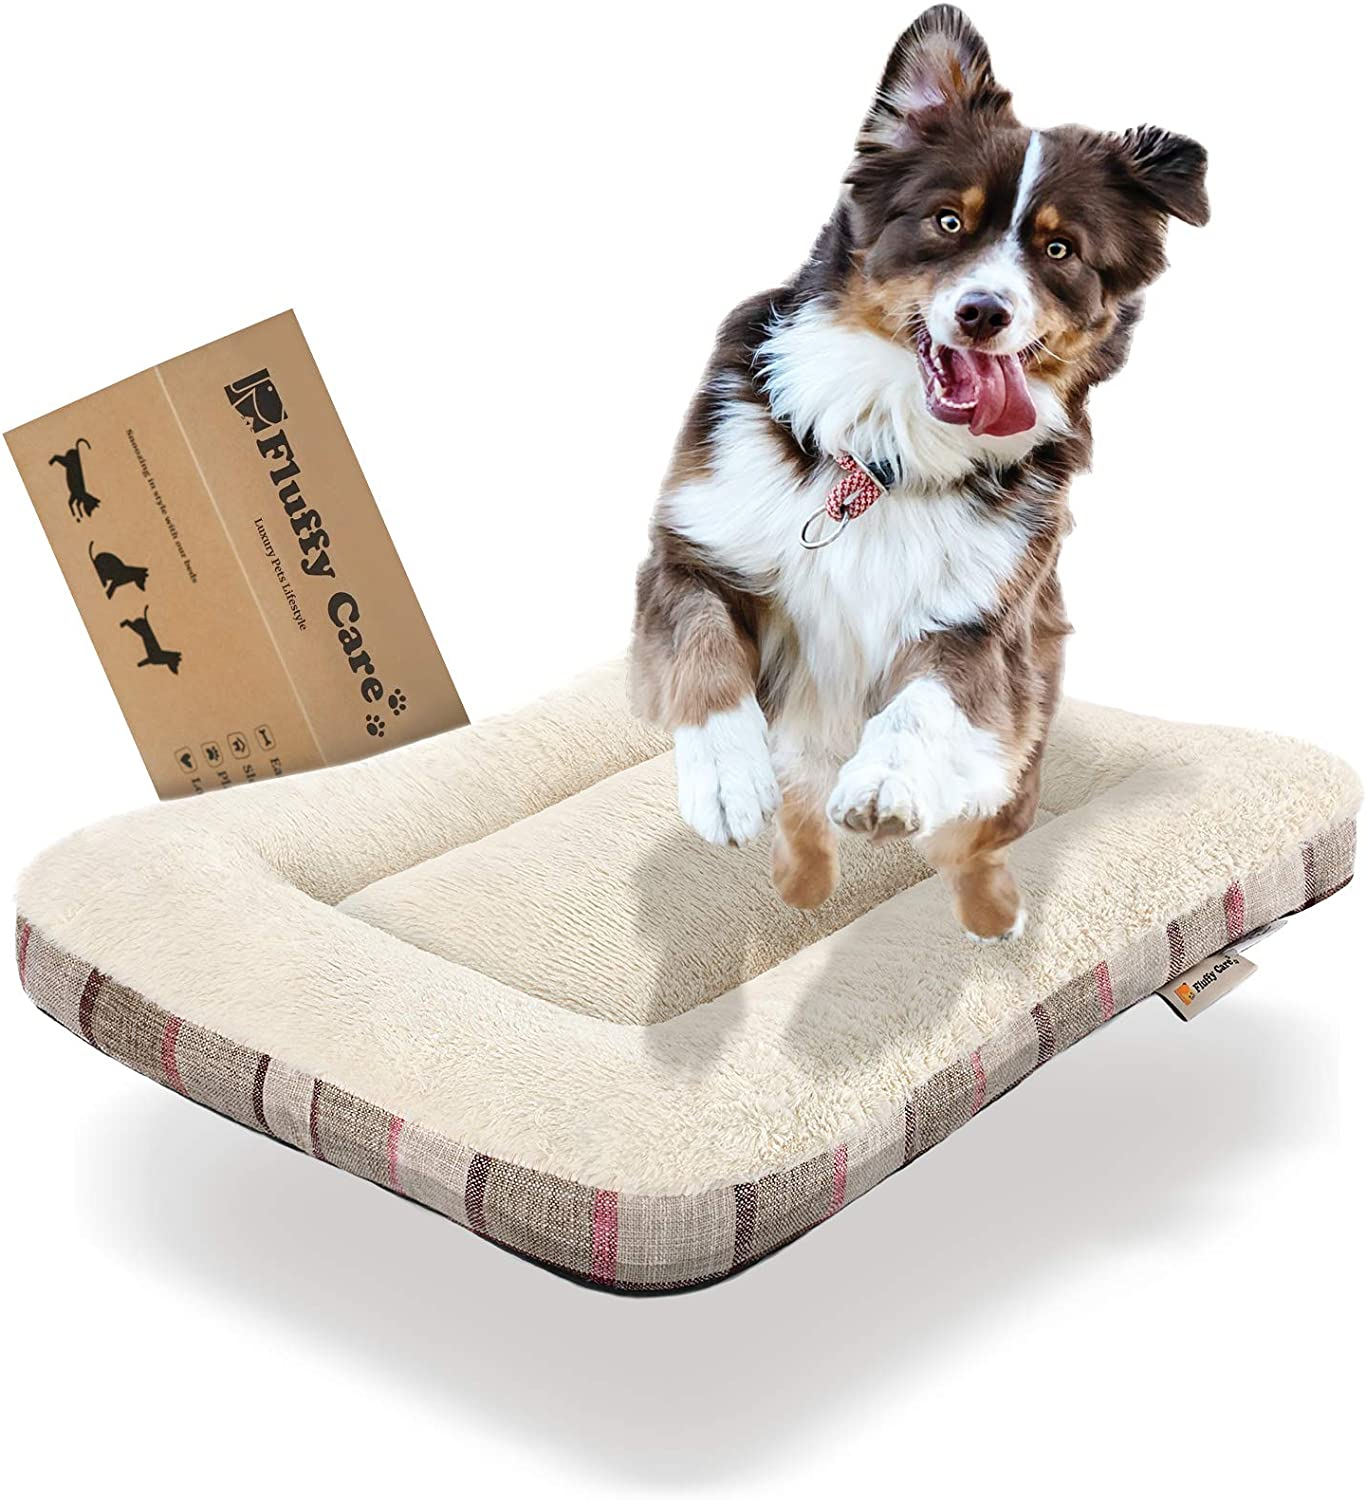 Fluffy Care Dog Bed Crate MatPetBed Ma Pad Now on sale Puppy Mat Ranking TOP2